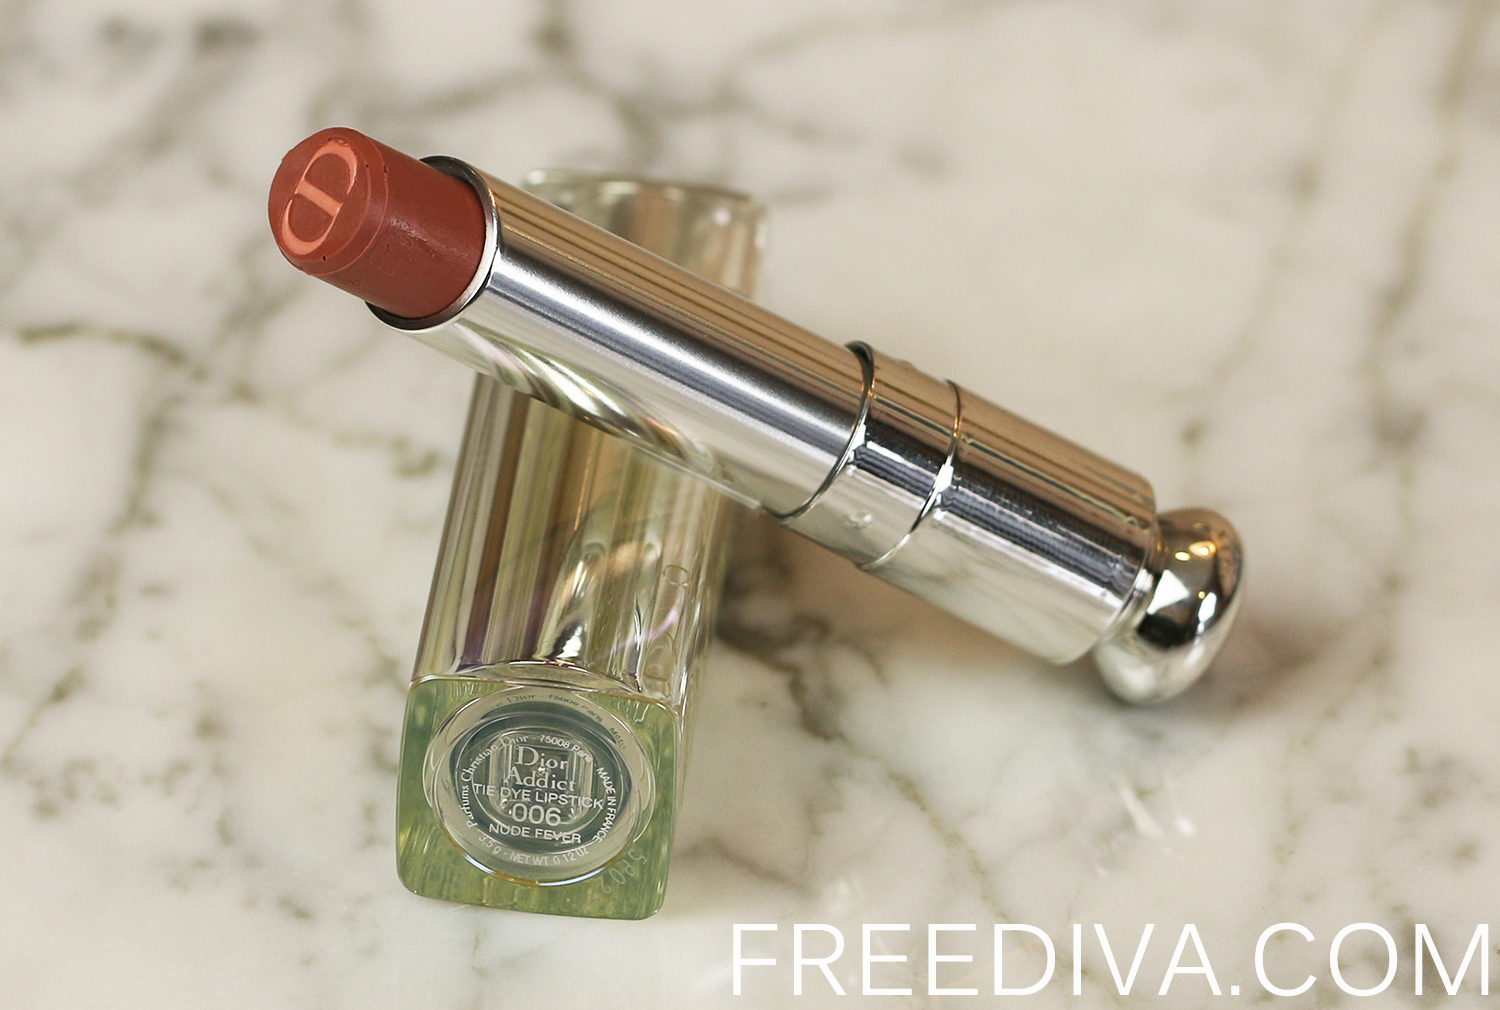 Dior Addict Lipstick 06 Nude Fever Tie Dye Collection